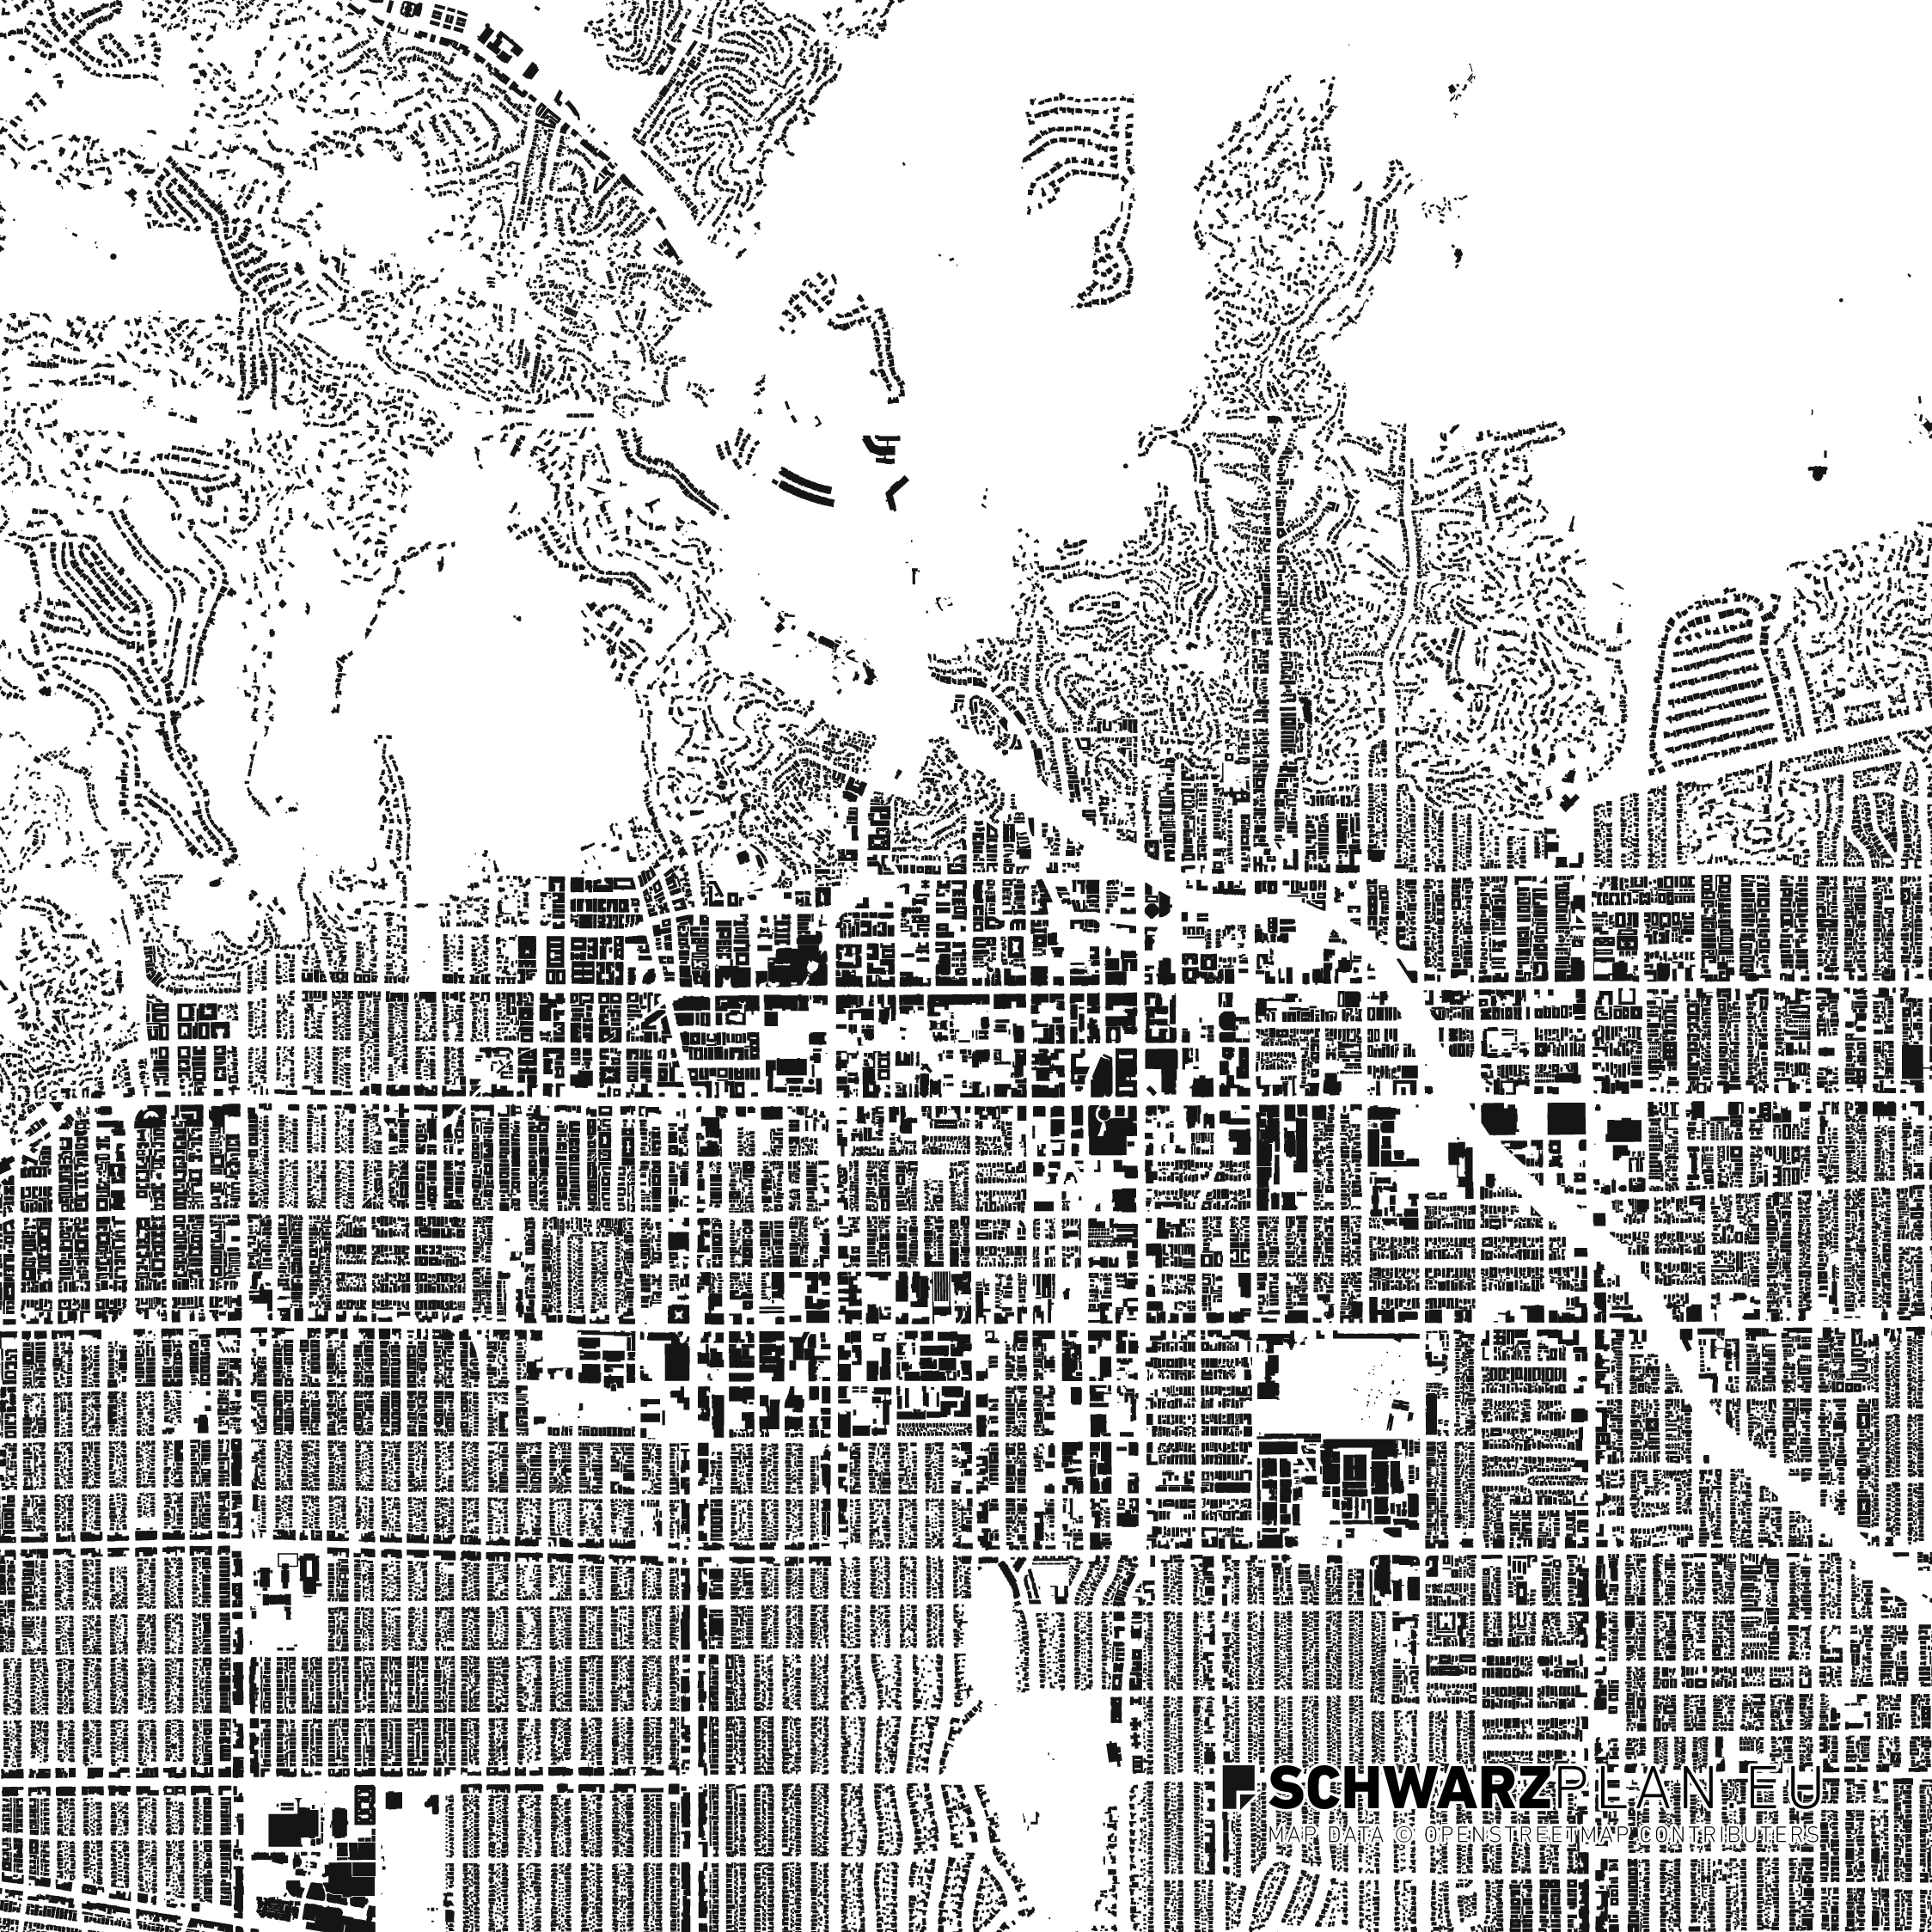 Figure ground plan of Hollywood